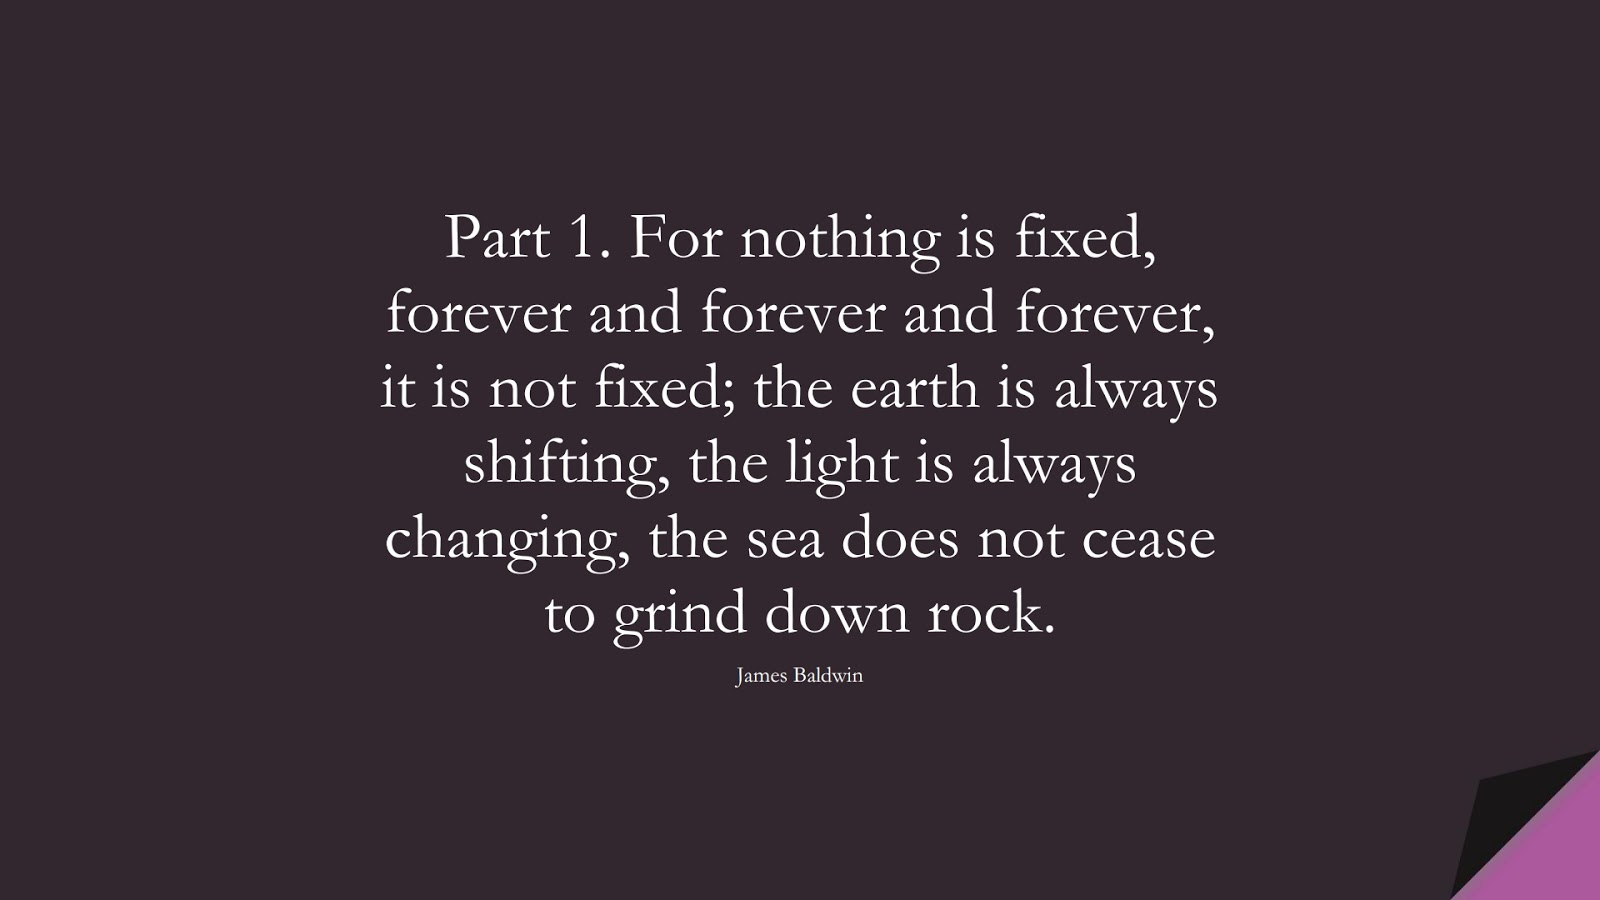 Part 1. For nothing is fixed, forever and forever and forever, it is not fixed; the earth is always shifting, the light is always changing, the sea does not cease to grind down rock. (James Baldwin);  #ChangeQuotes